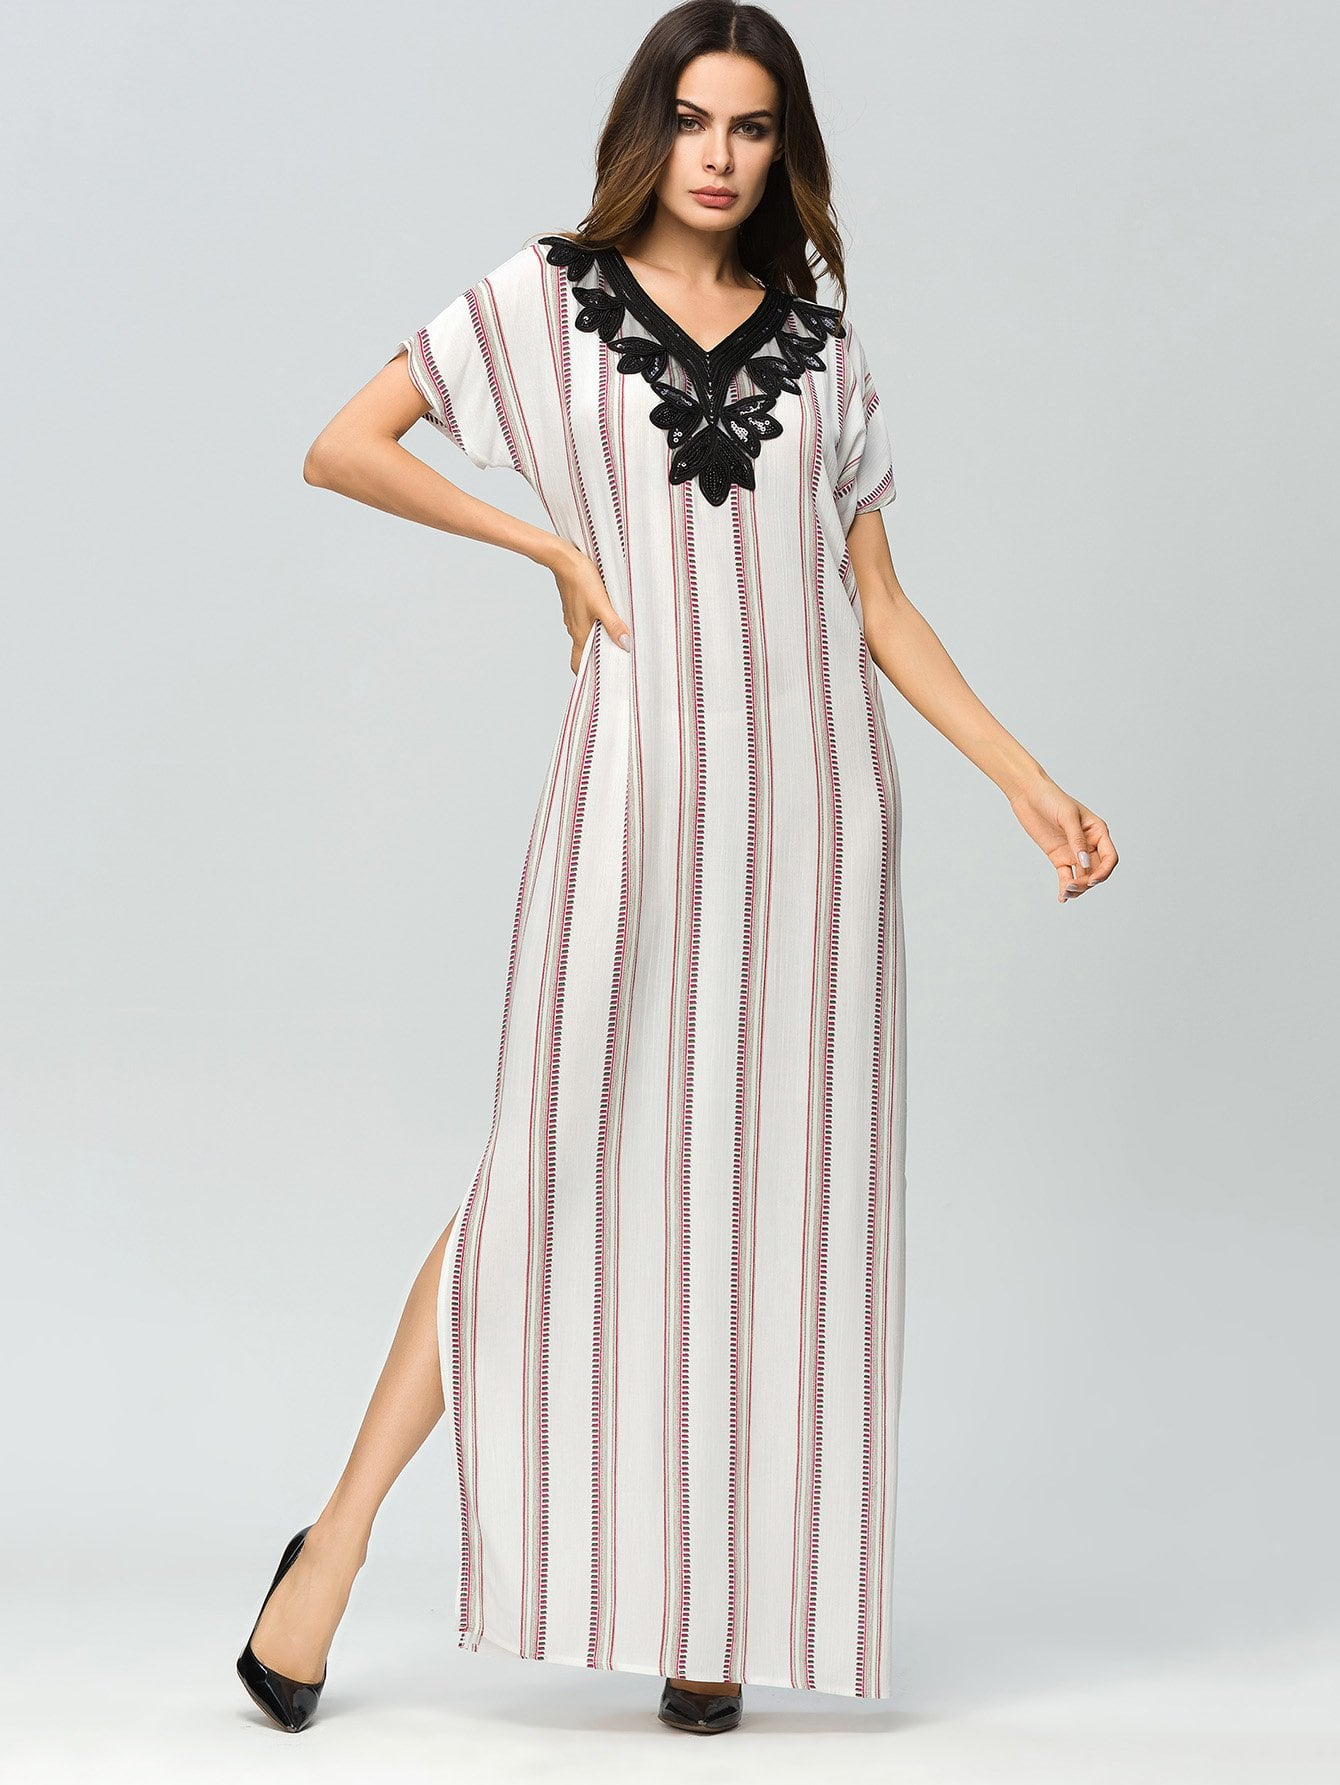 Contrast Sequin Striped Split Side Dress колесные диски yamato sidzuoka v 2 y7225 7x17 5x105 et42 d56 6 wrw ep